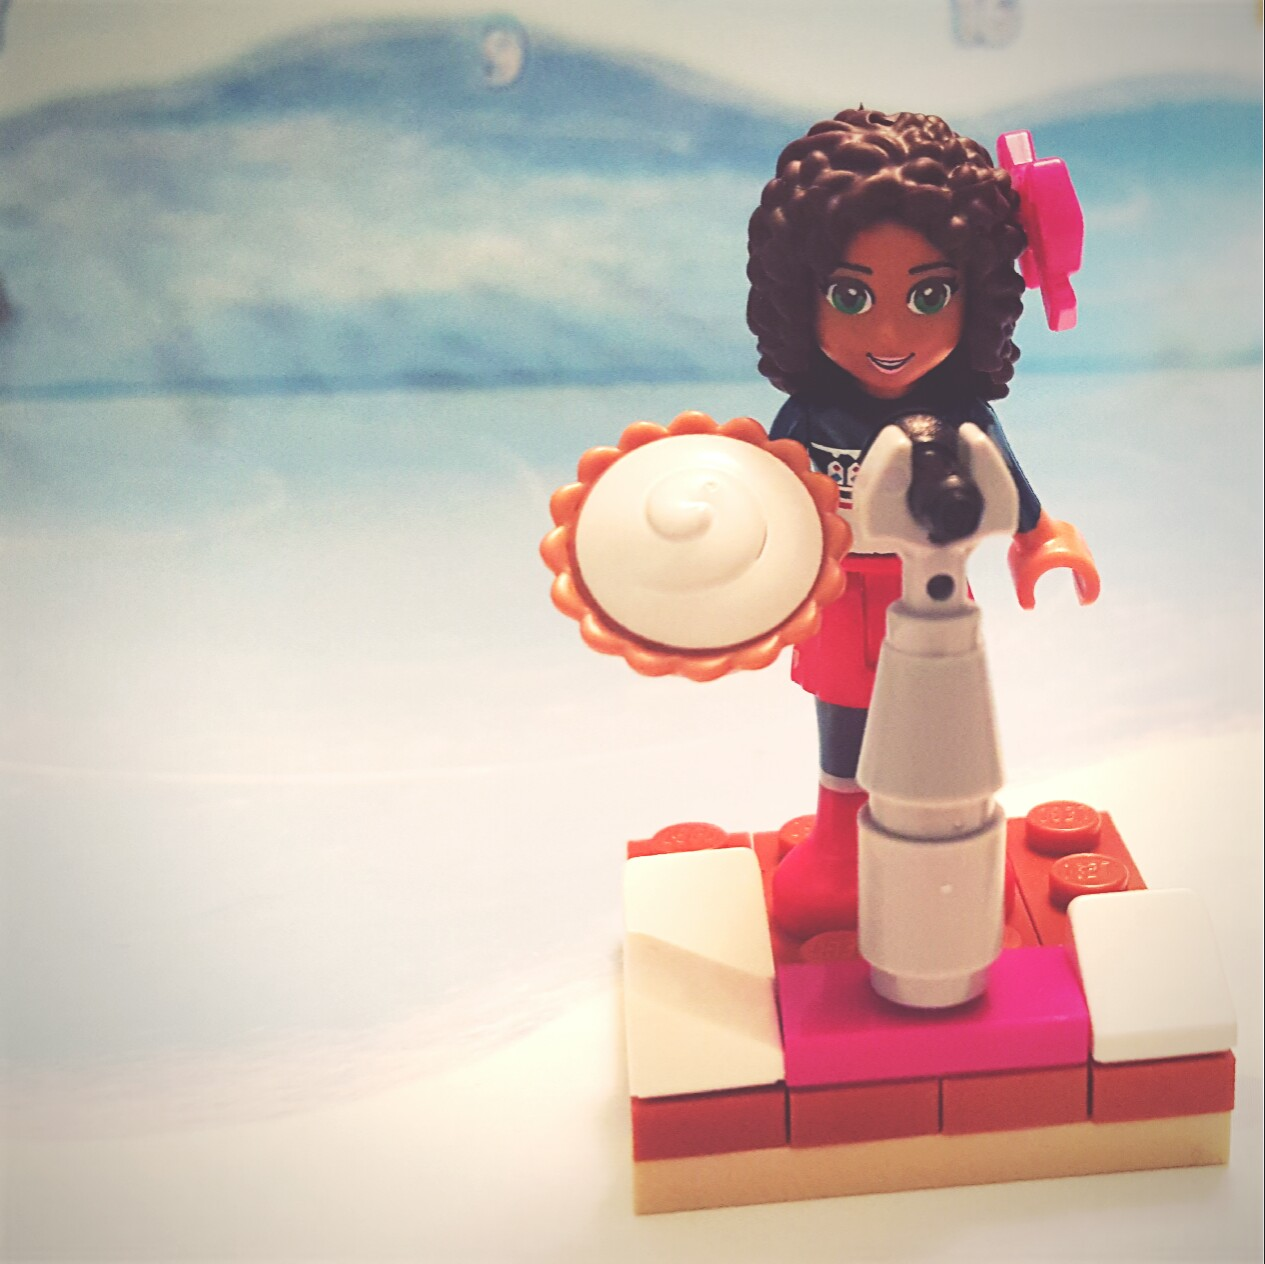 """""""We're raffling off this pie!"""" - Day 7 Microphone & Stand from LEGO Friends Advent Calendar"""